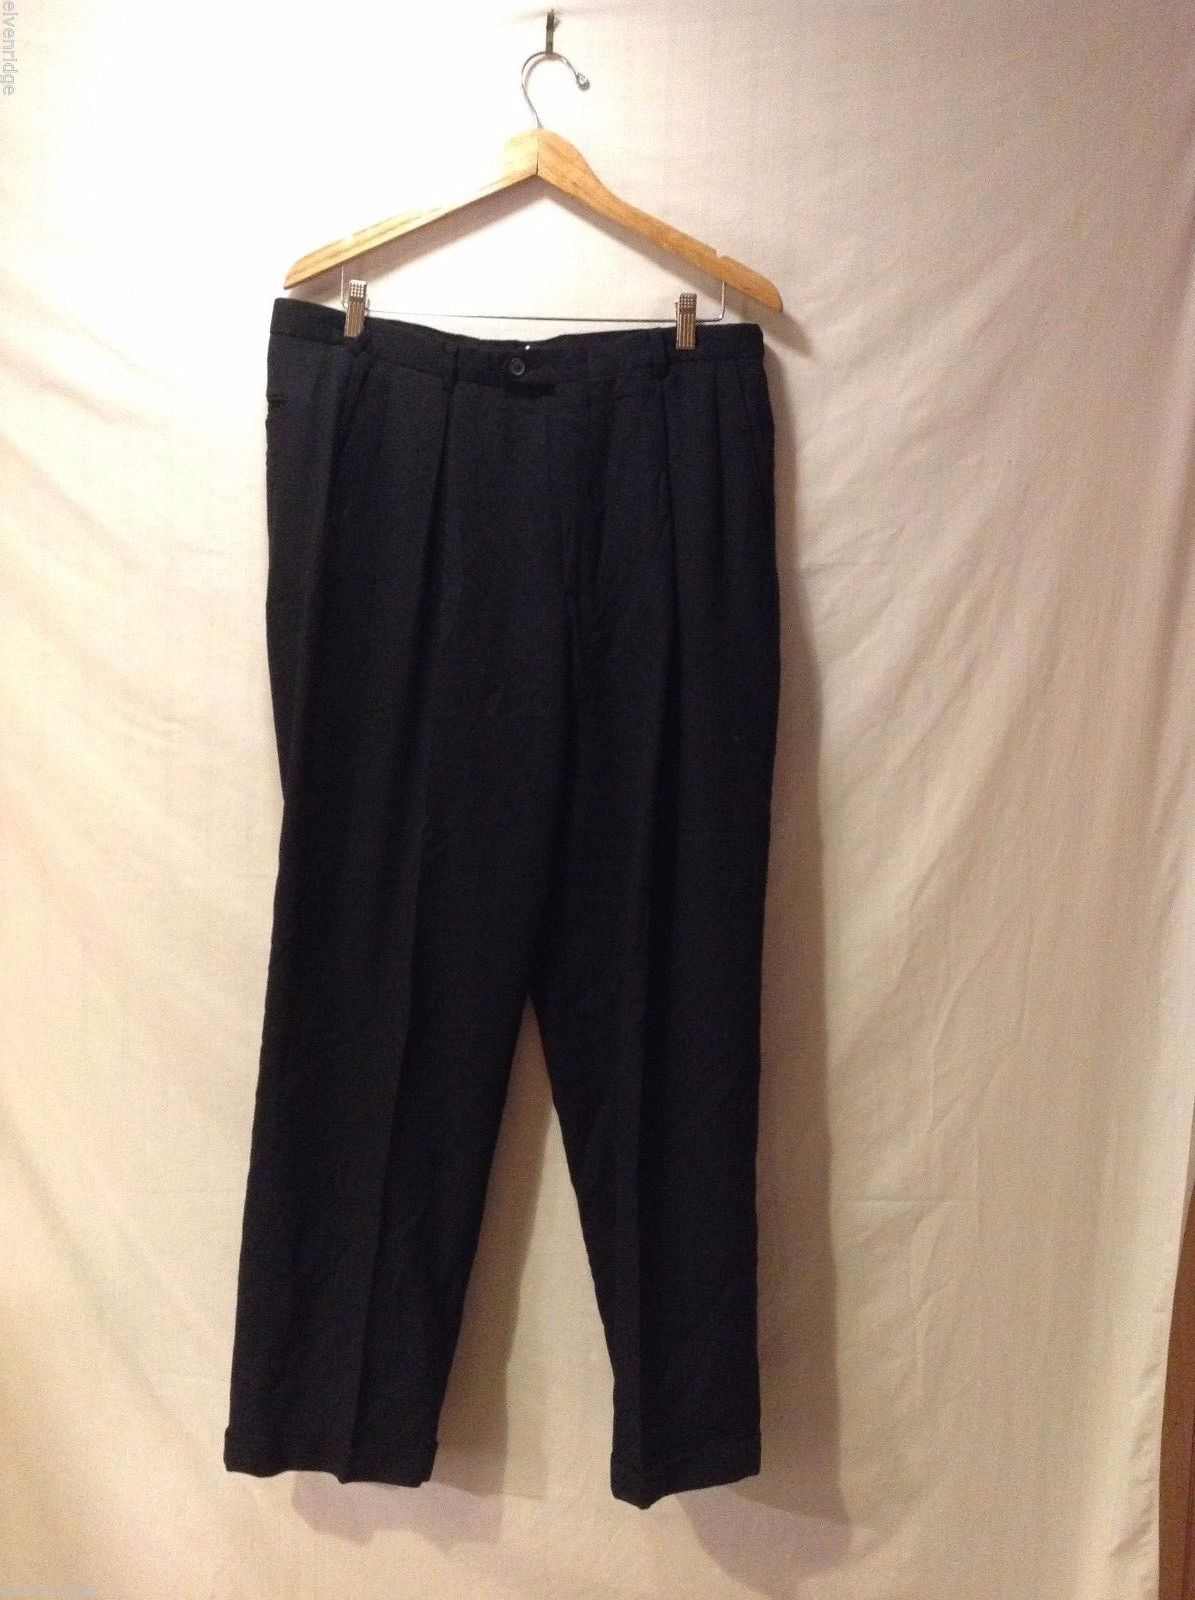 N Signia Mens Black Dress Pants